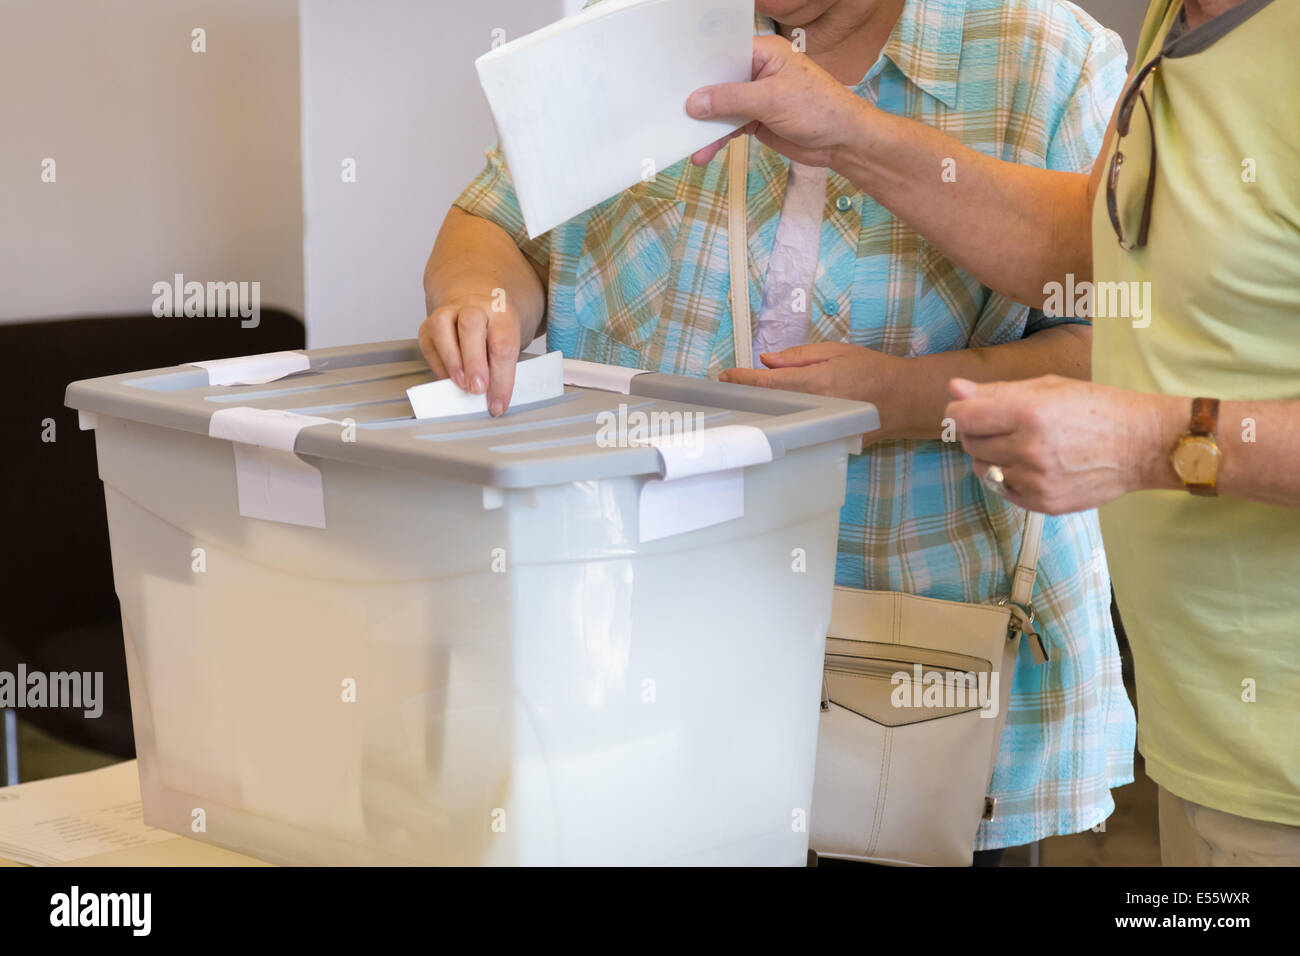 Citizens voting on democratic election. - Stock Image